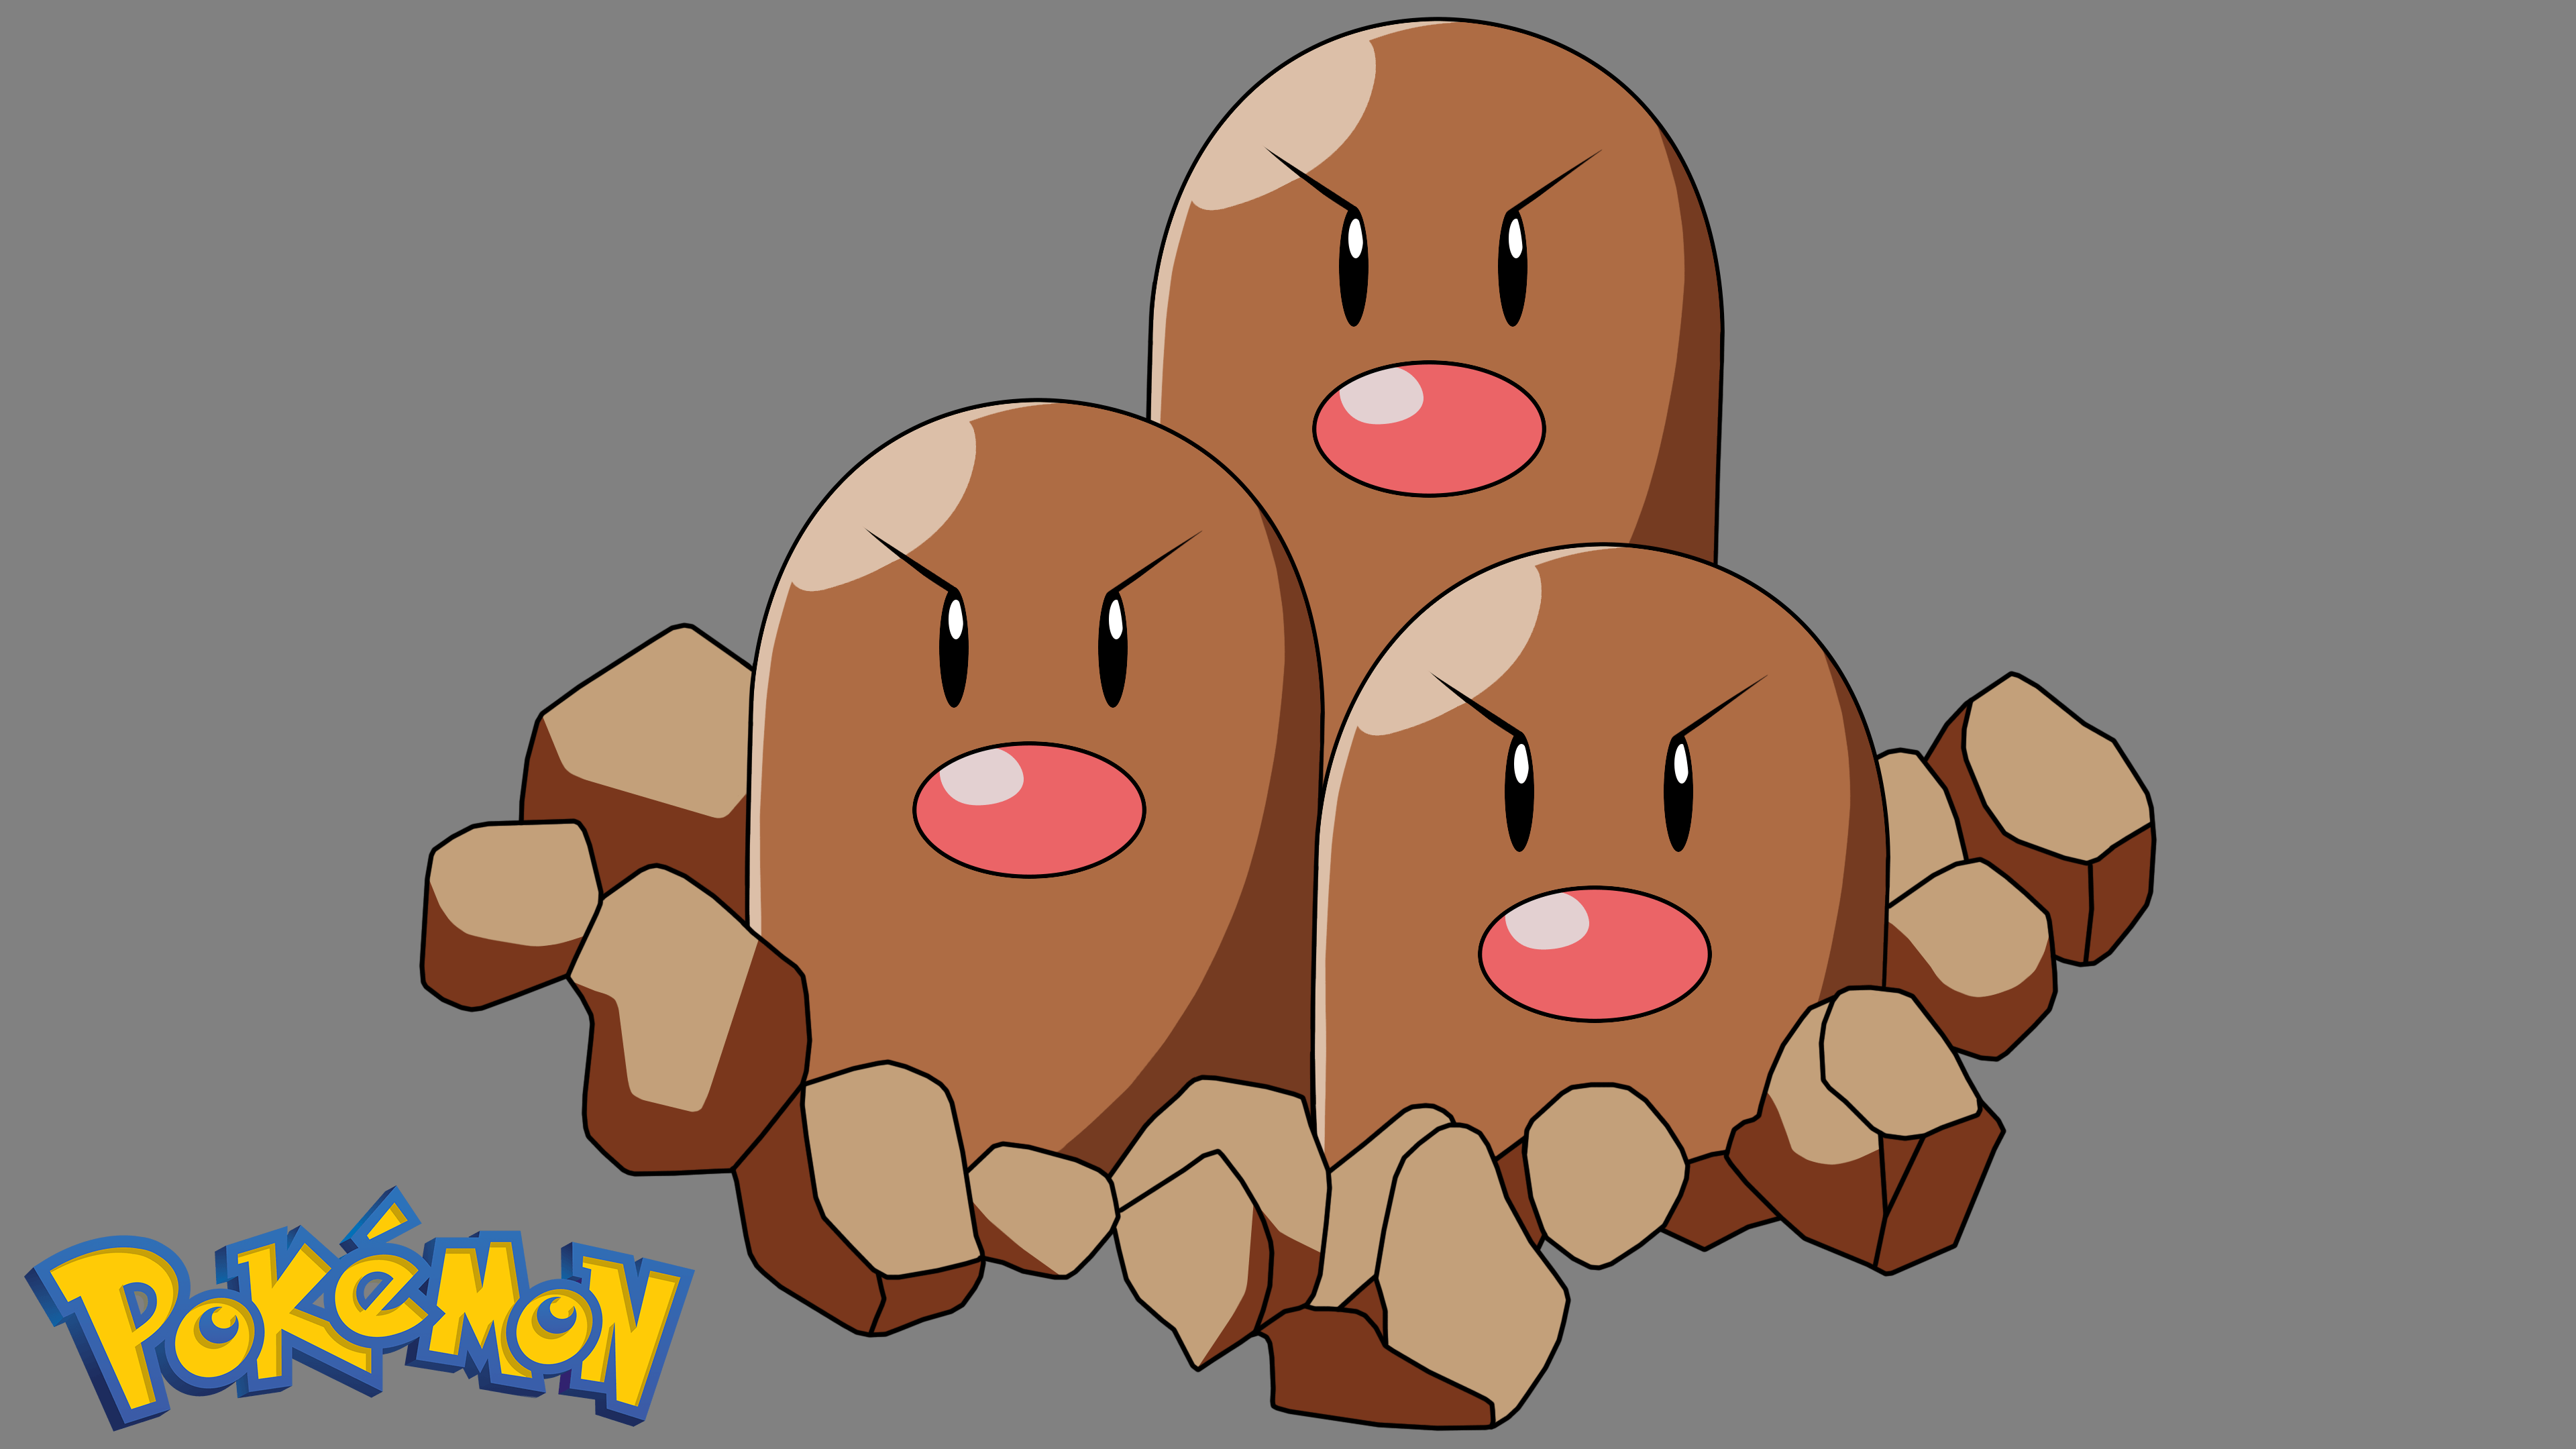 Pokemon - Dugtrio #1 by Gatnne on DeviantArt